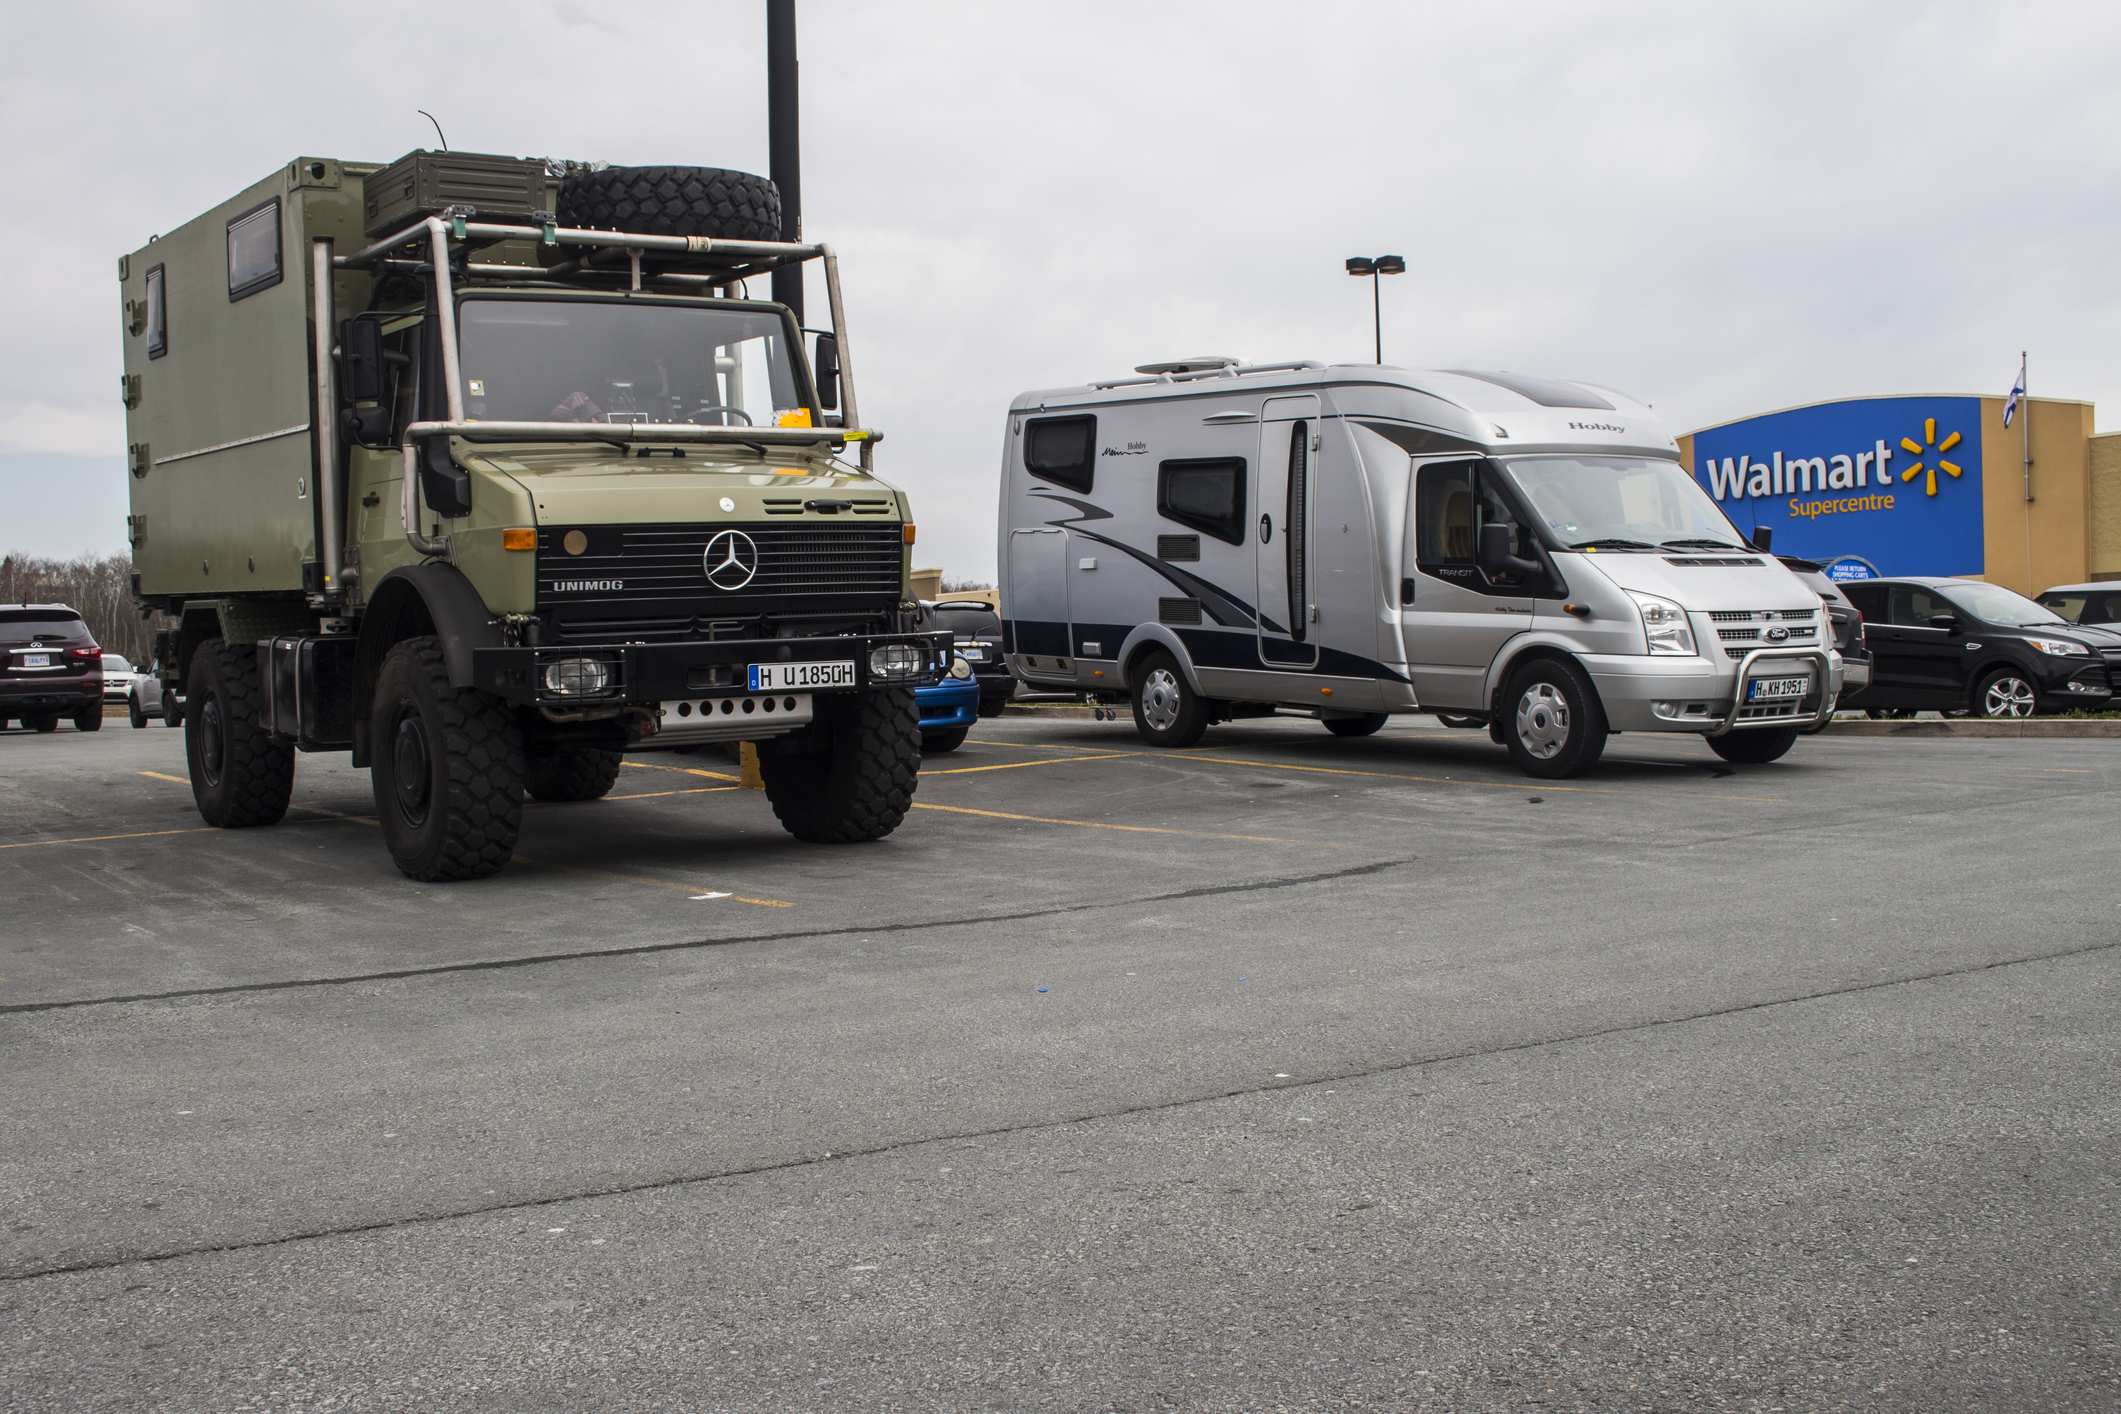 Bedford, Nova Scotia, Canada - May 14, 2016: European recreational vehicles camping overnight in a Walmart parking lot.